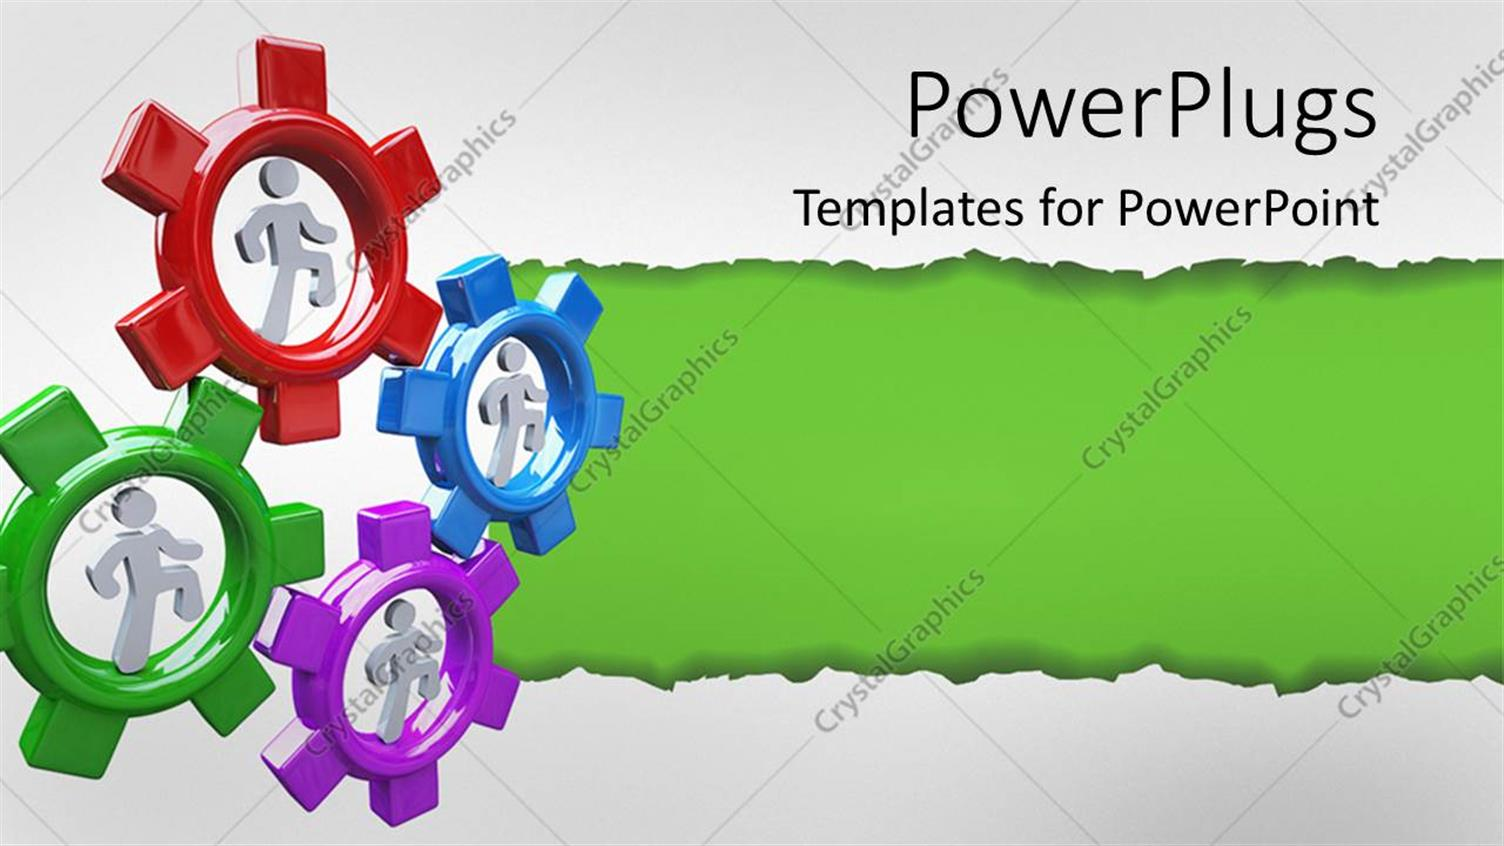 PowerPoint Template Displaying Four People Run in Colorful Gear Wheels to Symbolize Collaboration and Teamwork